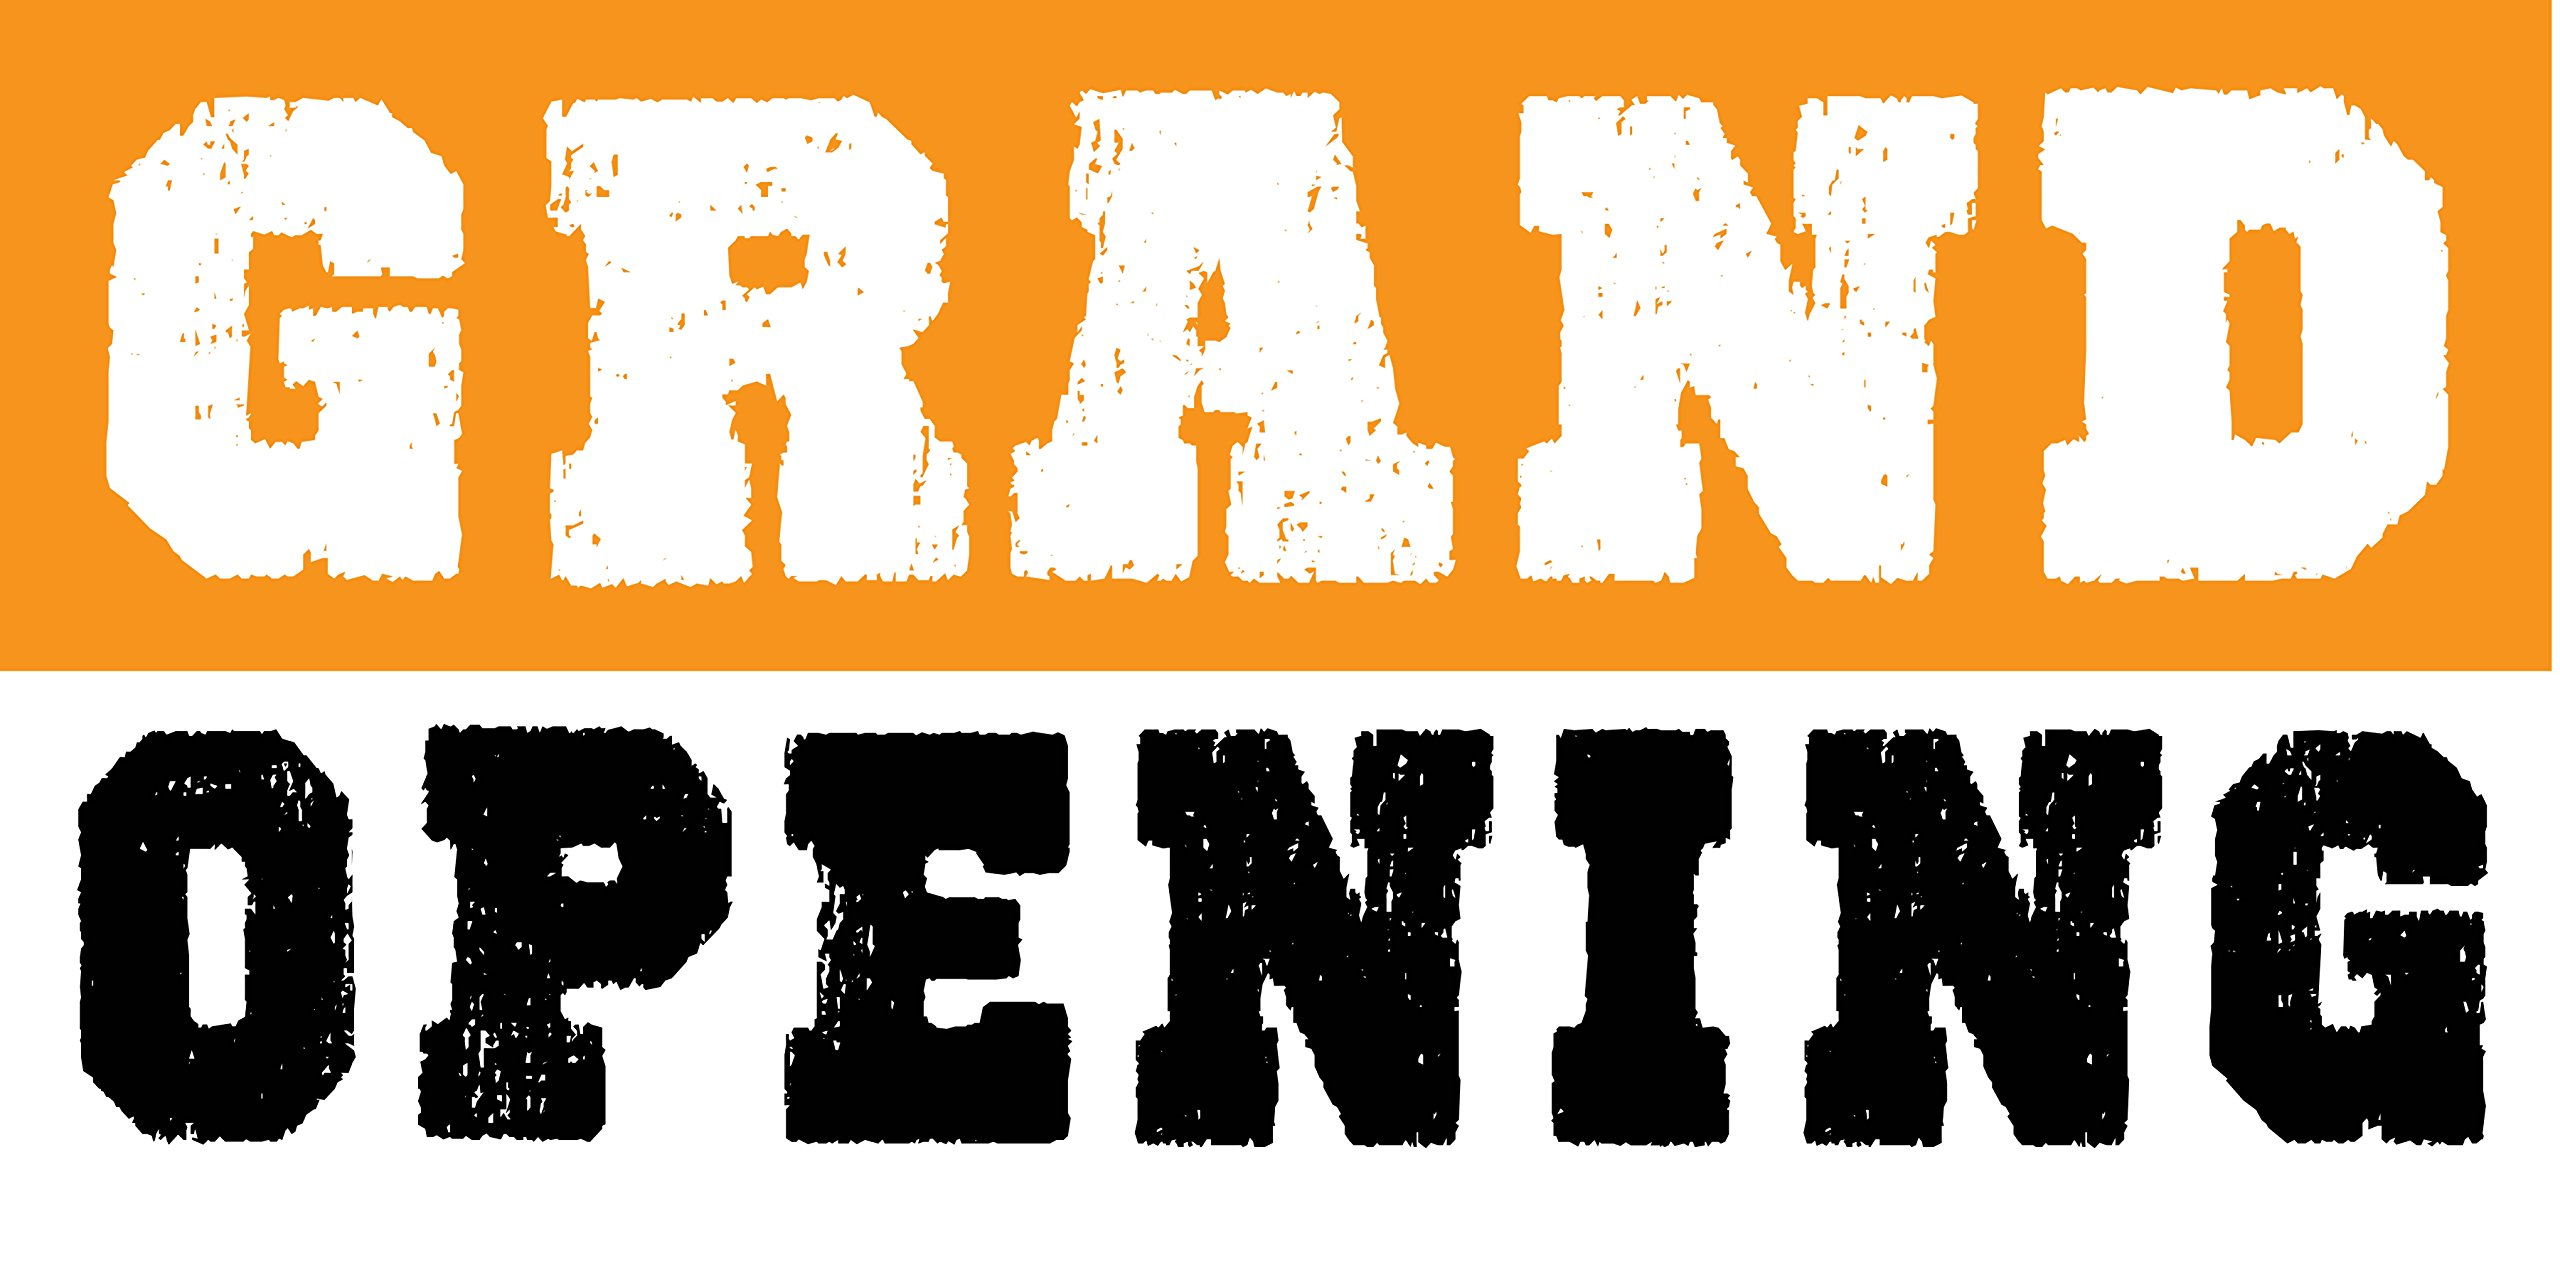 Pre-Printed Grand Opening Banner - Stripe - Orange (10' x 5') by Reliable Banner Sign Supply & Printing (Image #1)